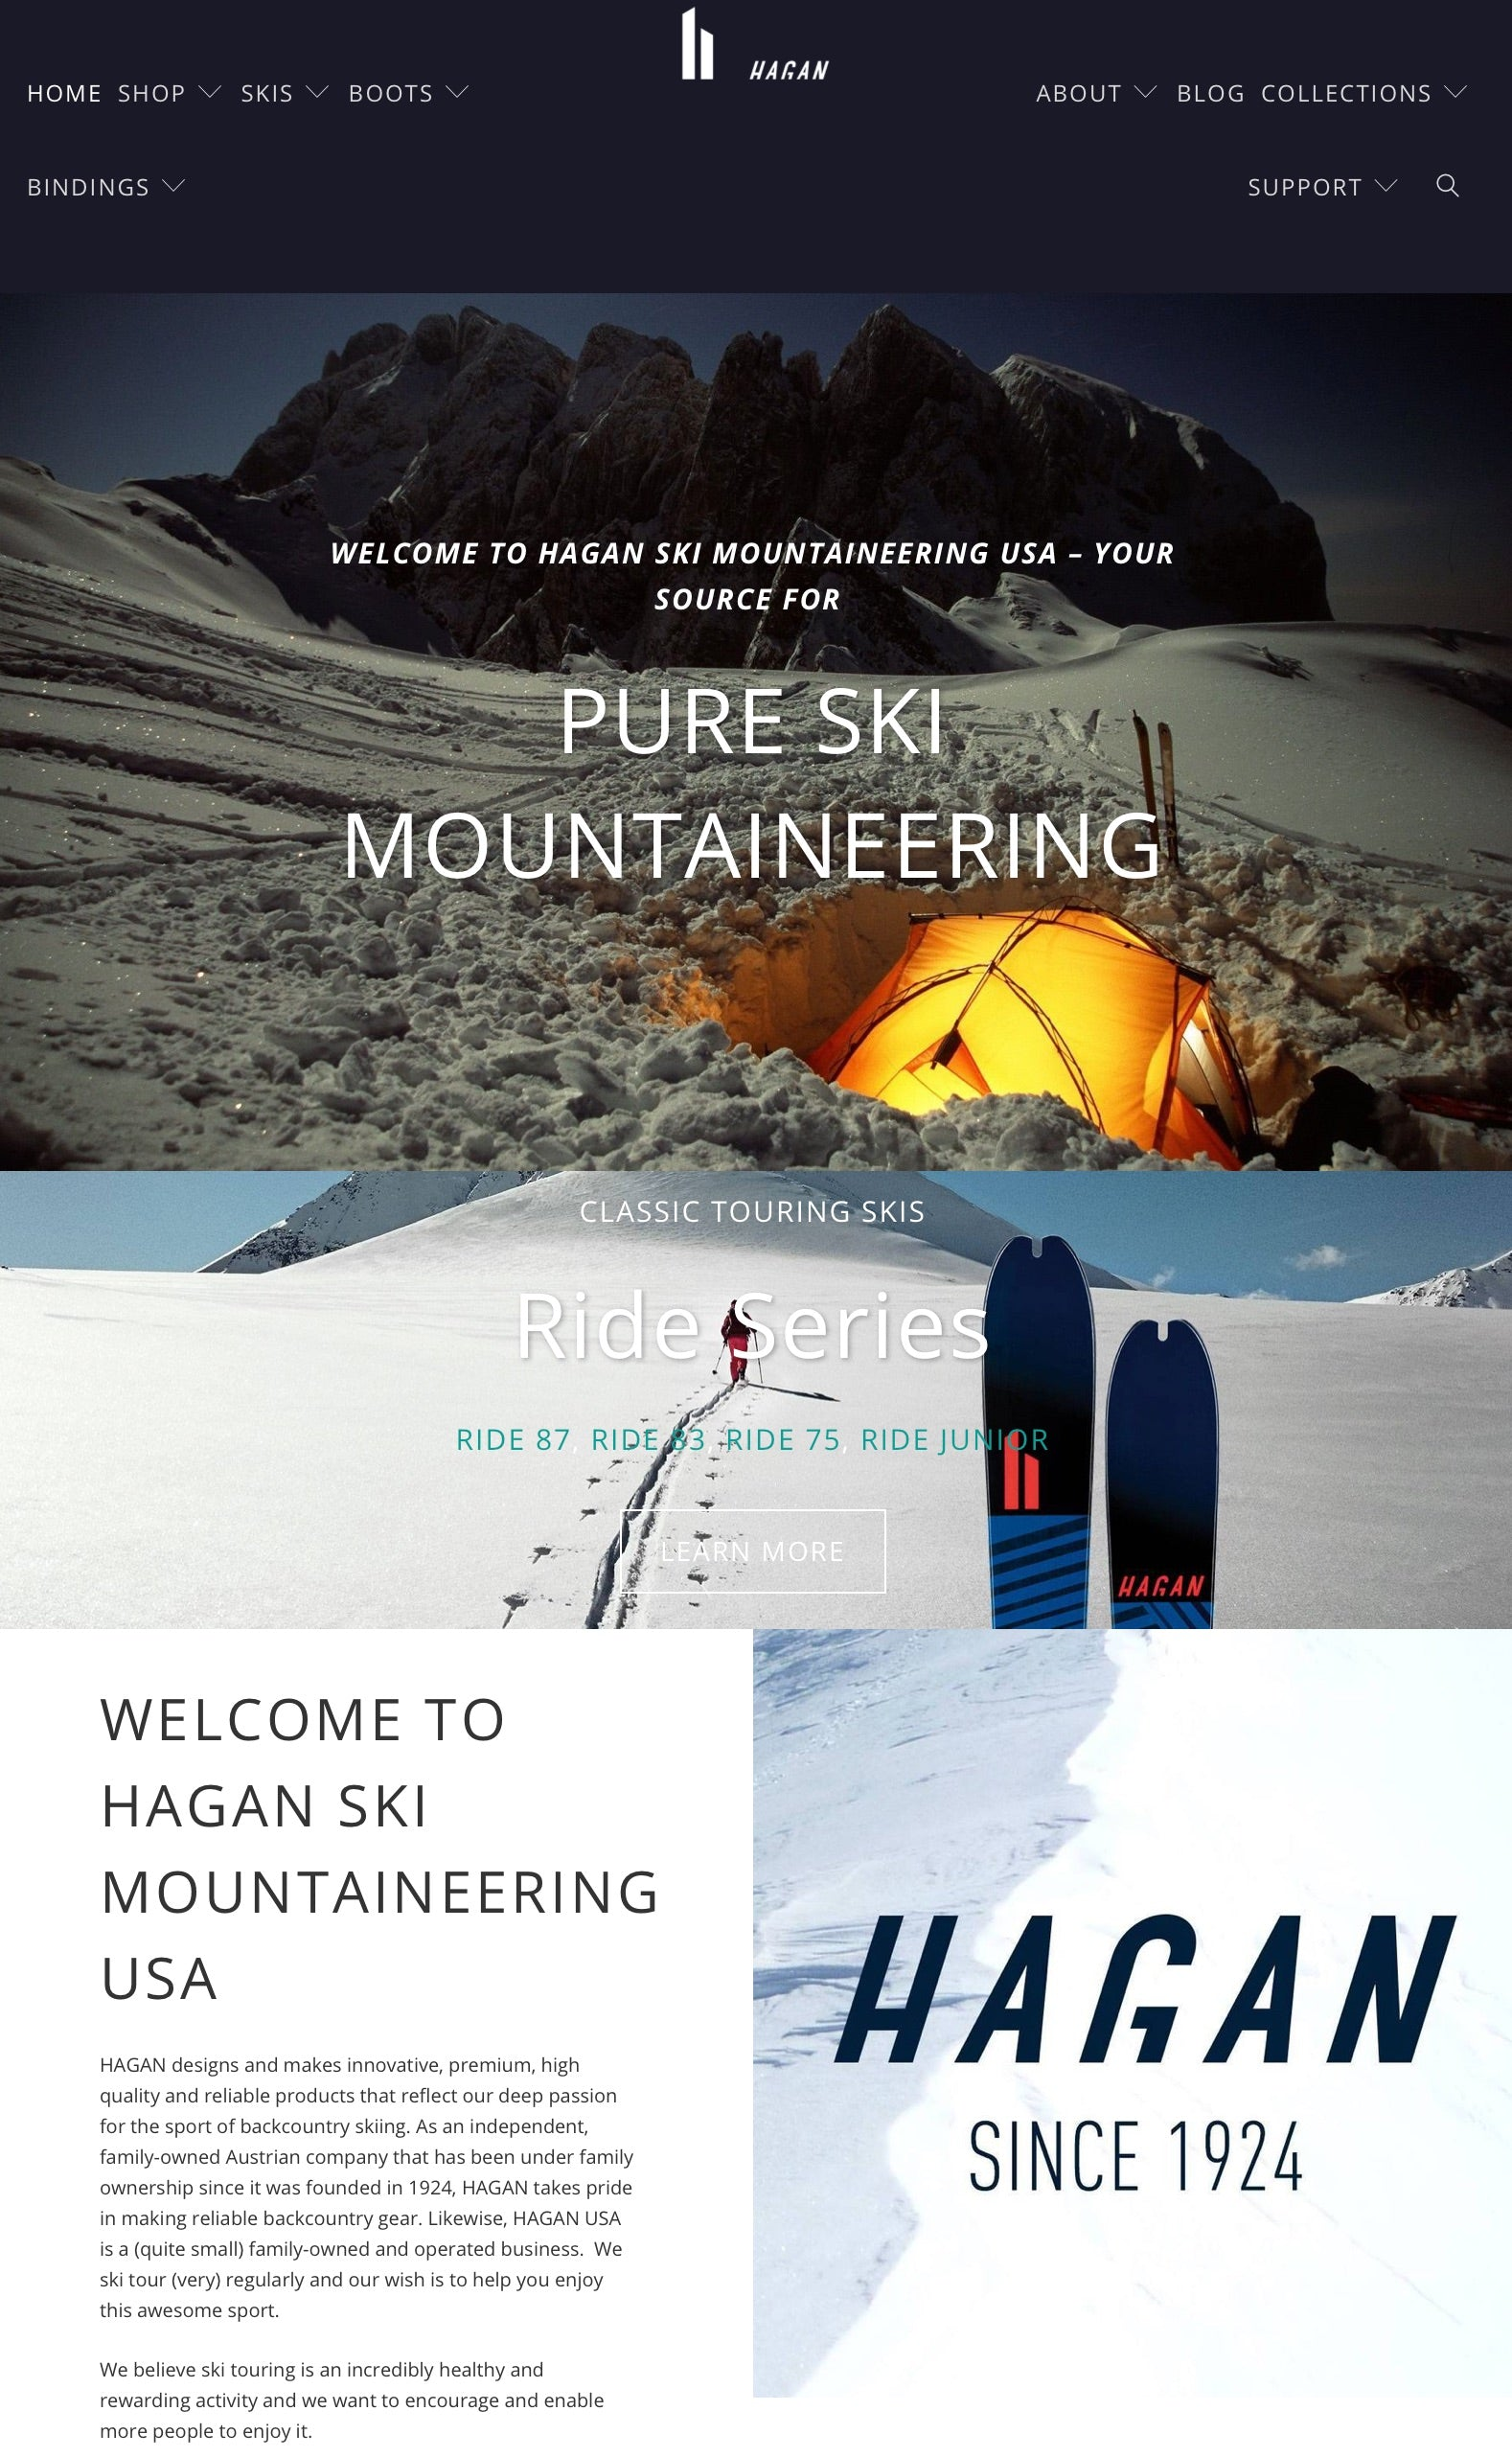 Brand New Hagan Ski Mountaineering USA Website!